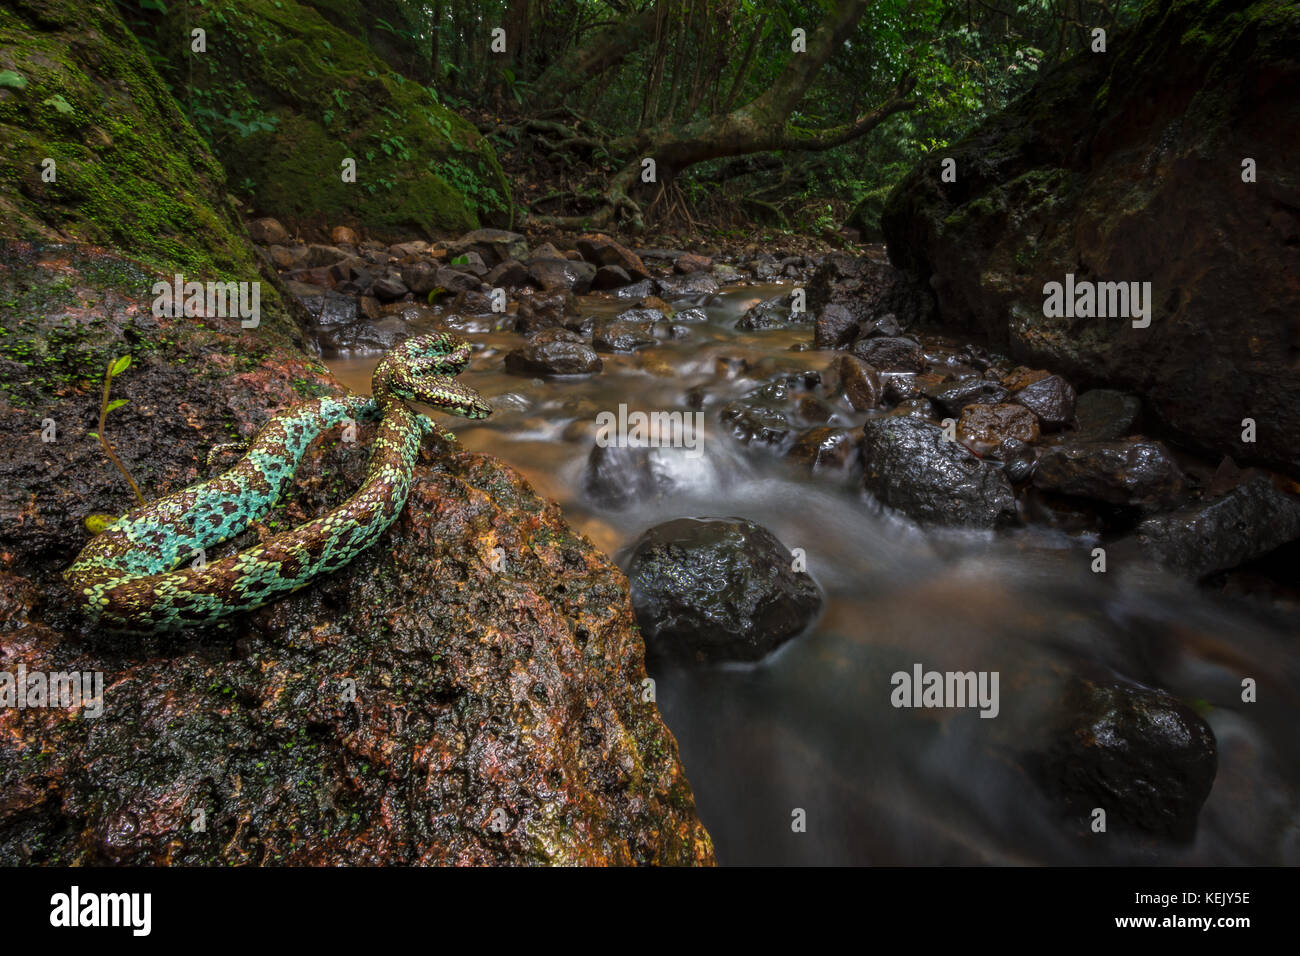 Malabar pit viper at a stream in Amboli - Stock Image